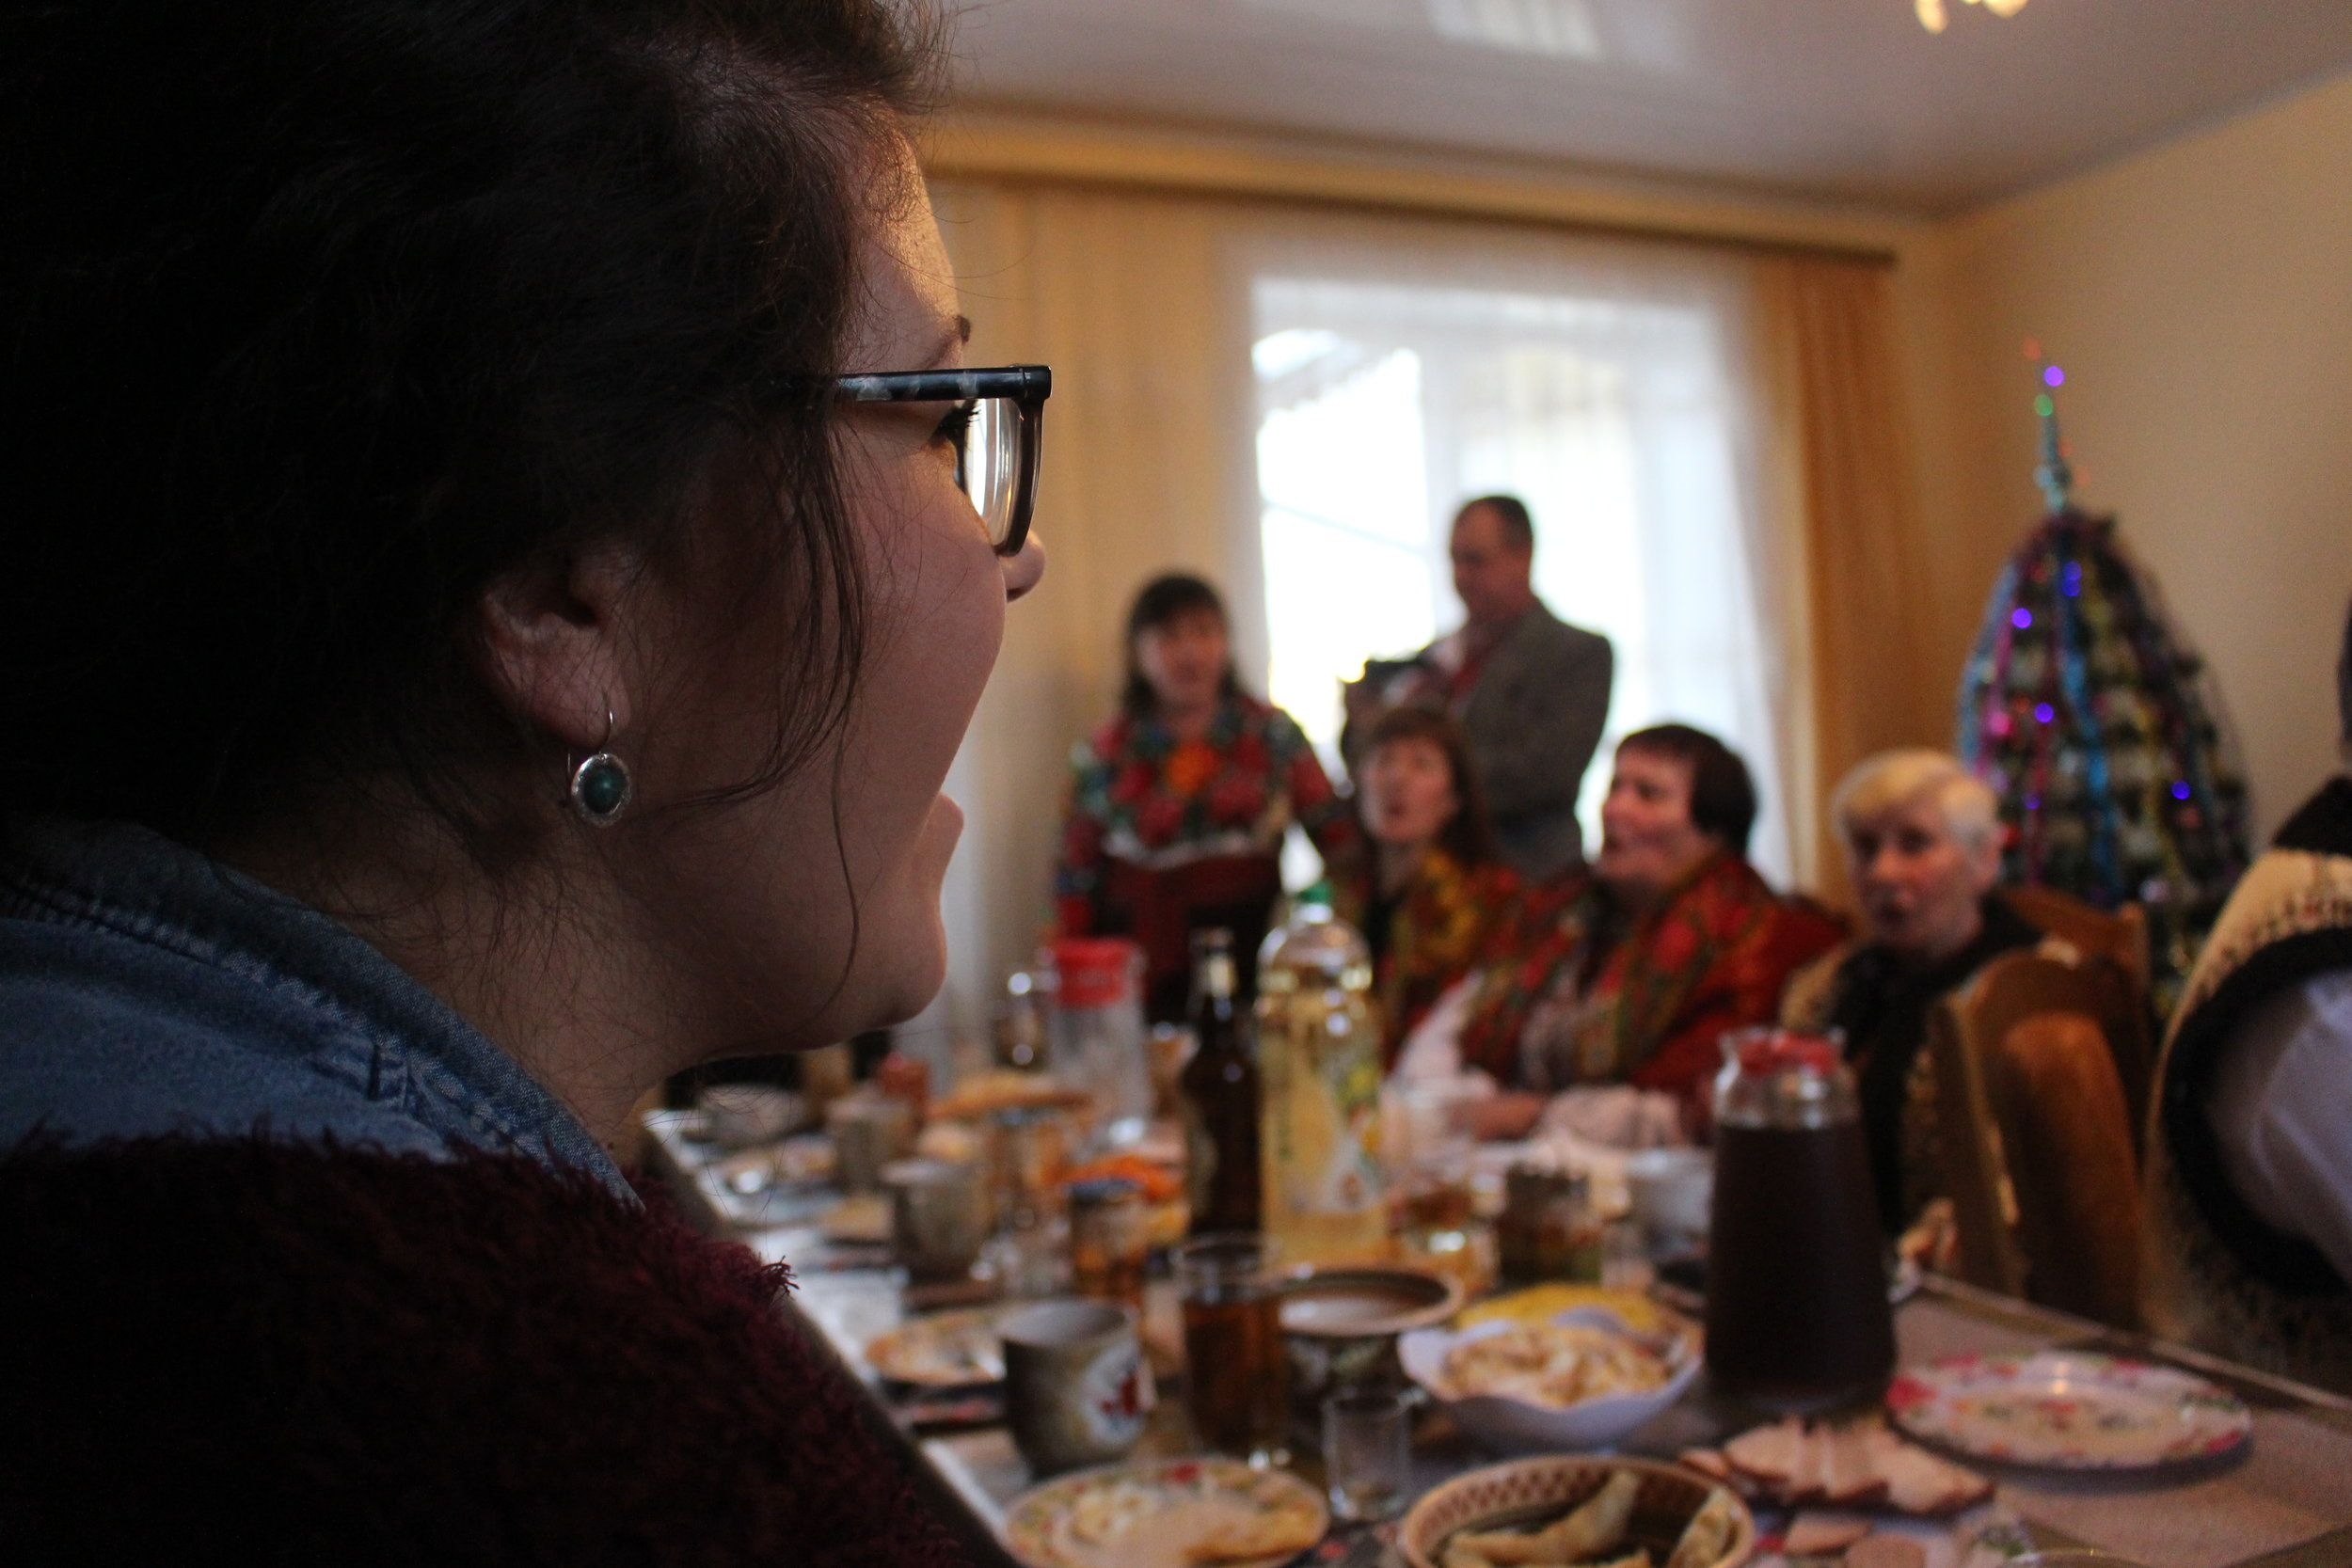 Hannah Picklyk sings her heart out at Christmas dinner in Tulova.